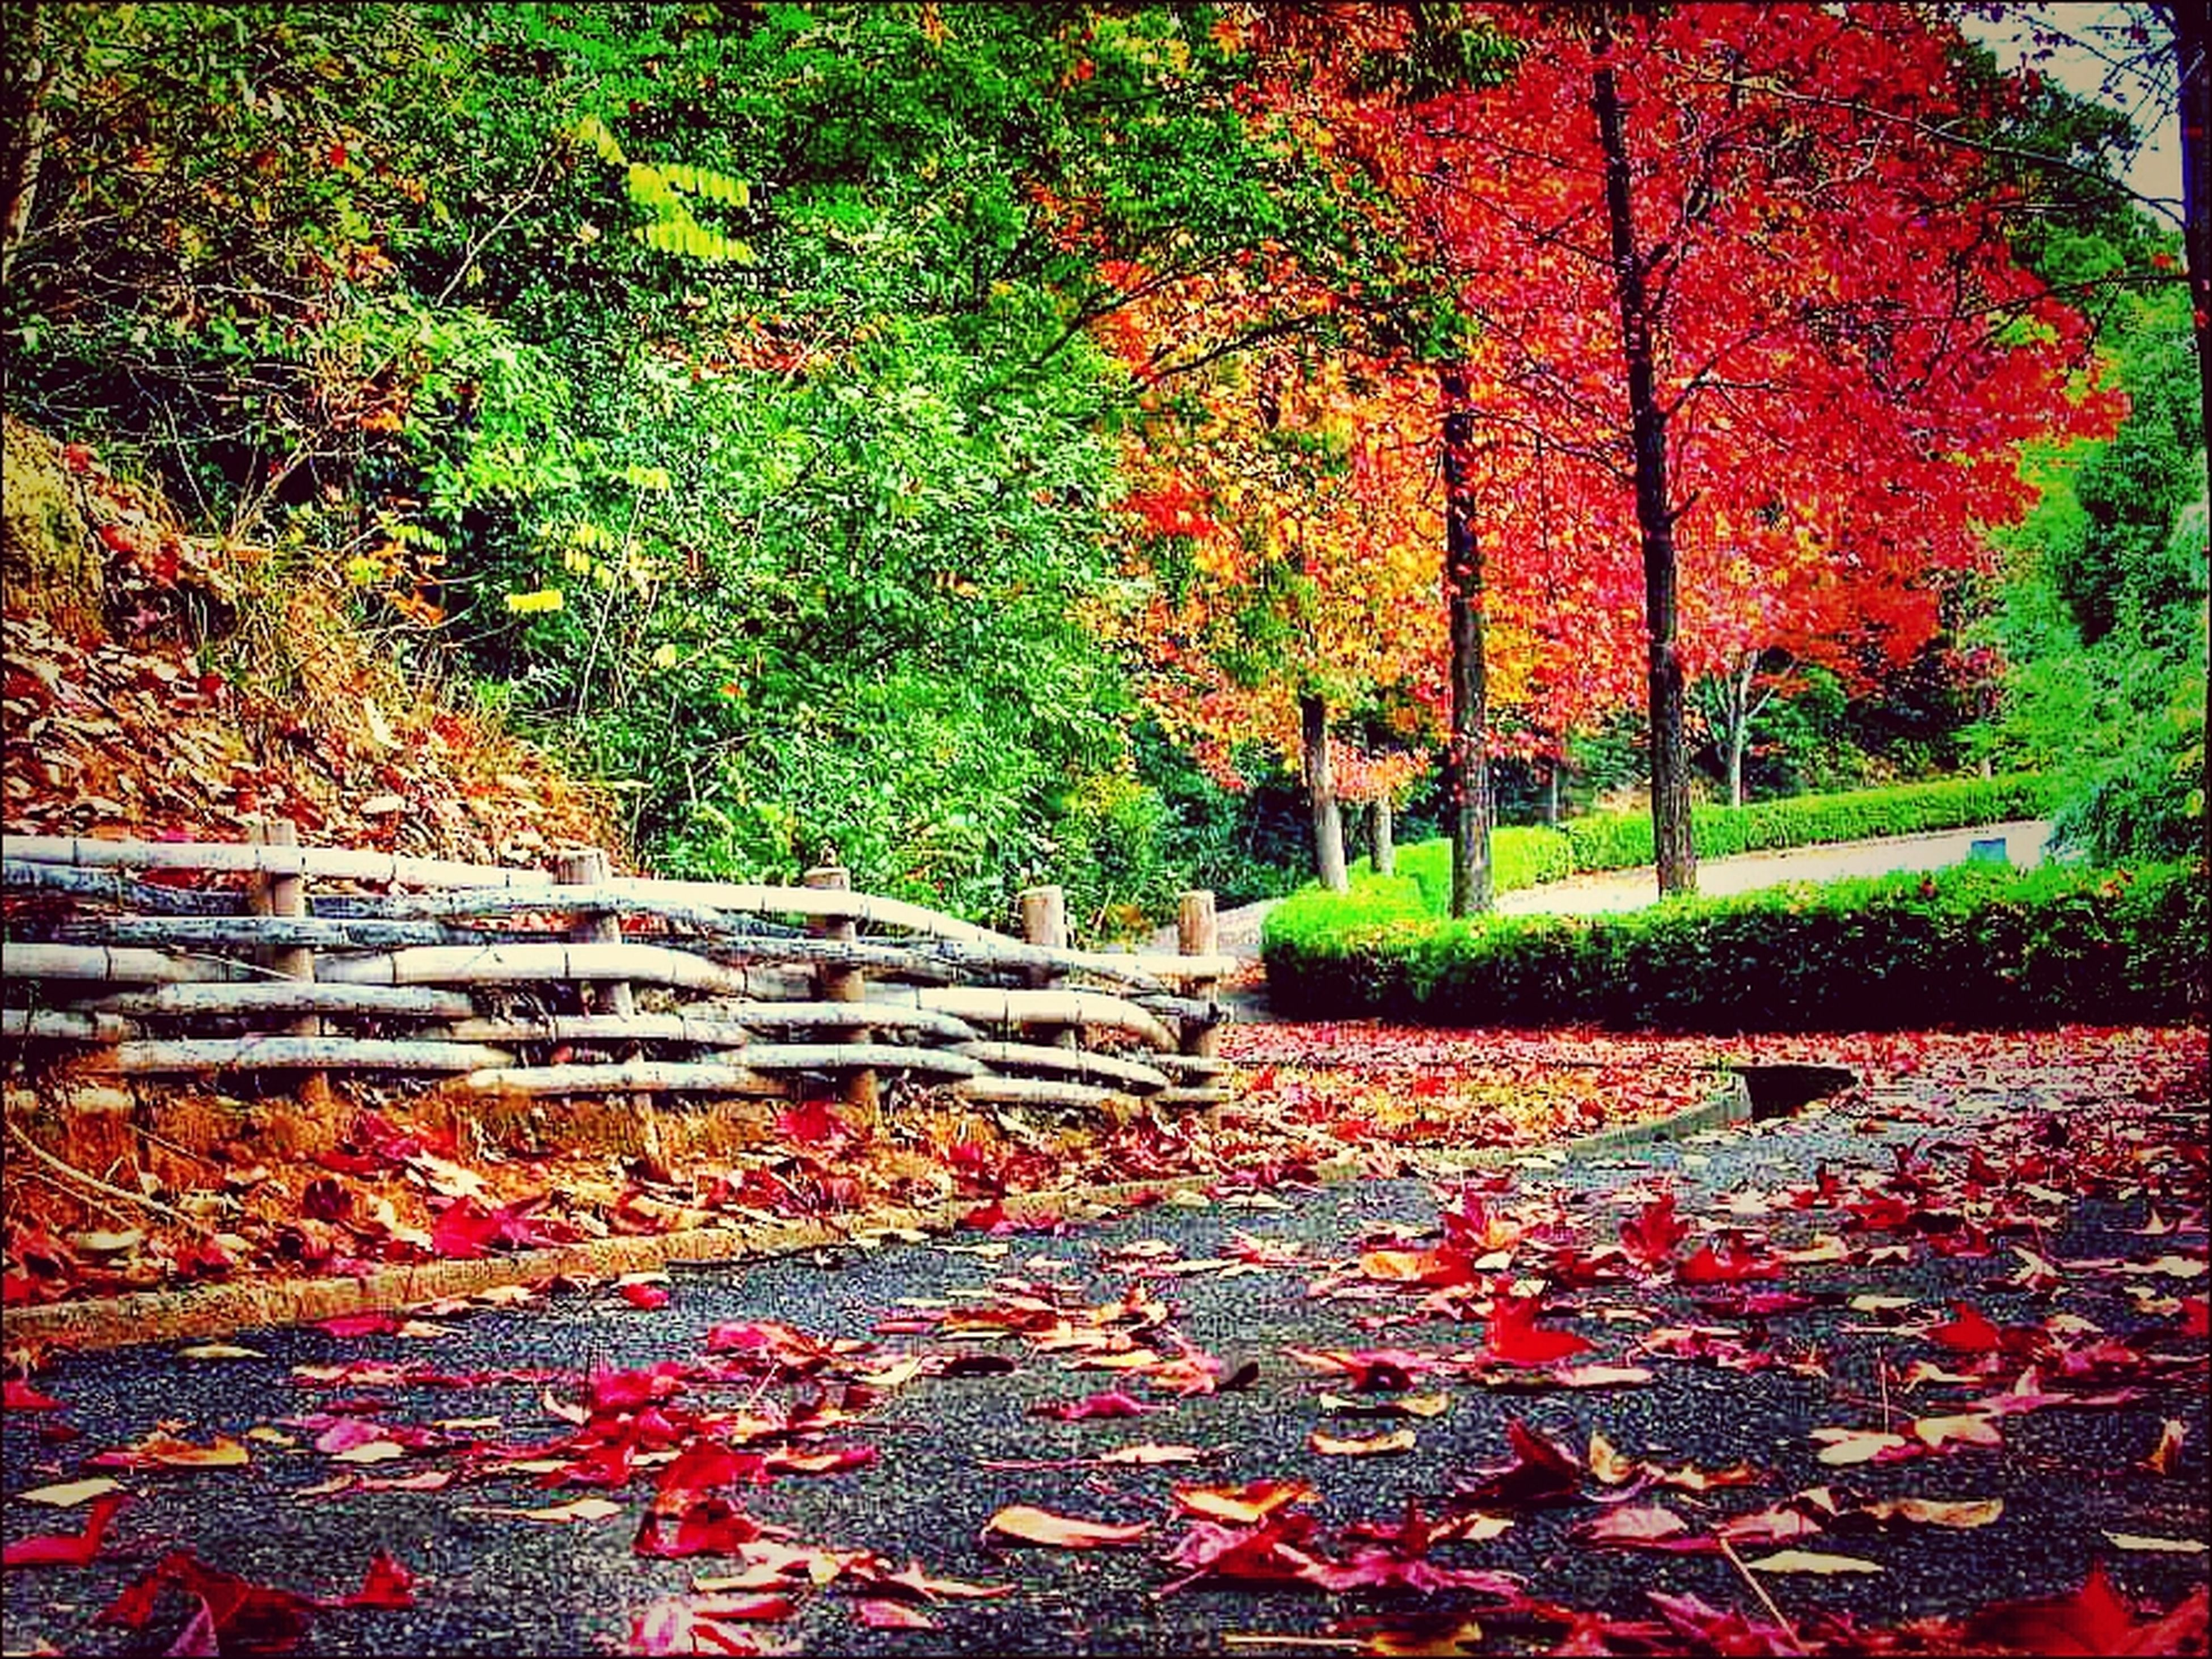 autumn, tree, change, season, park - man made space, red, leaf, fallen, nature, tranquility, bench, growth, park, beauty in nature, leaves, day, orange color, green color, outdoors, abundance